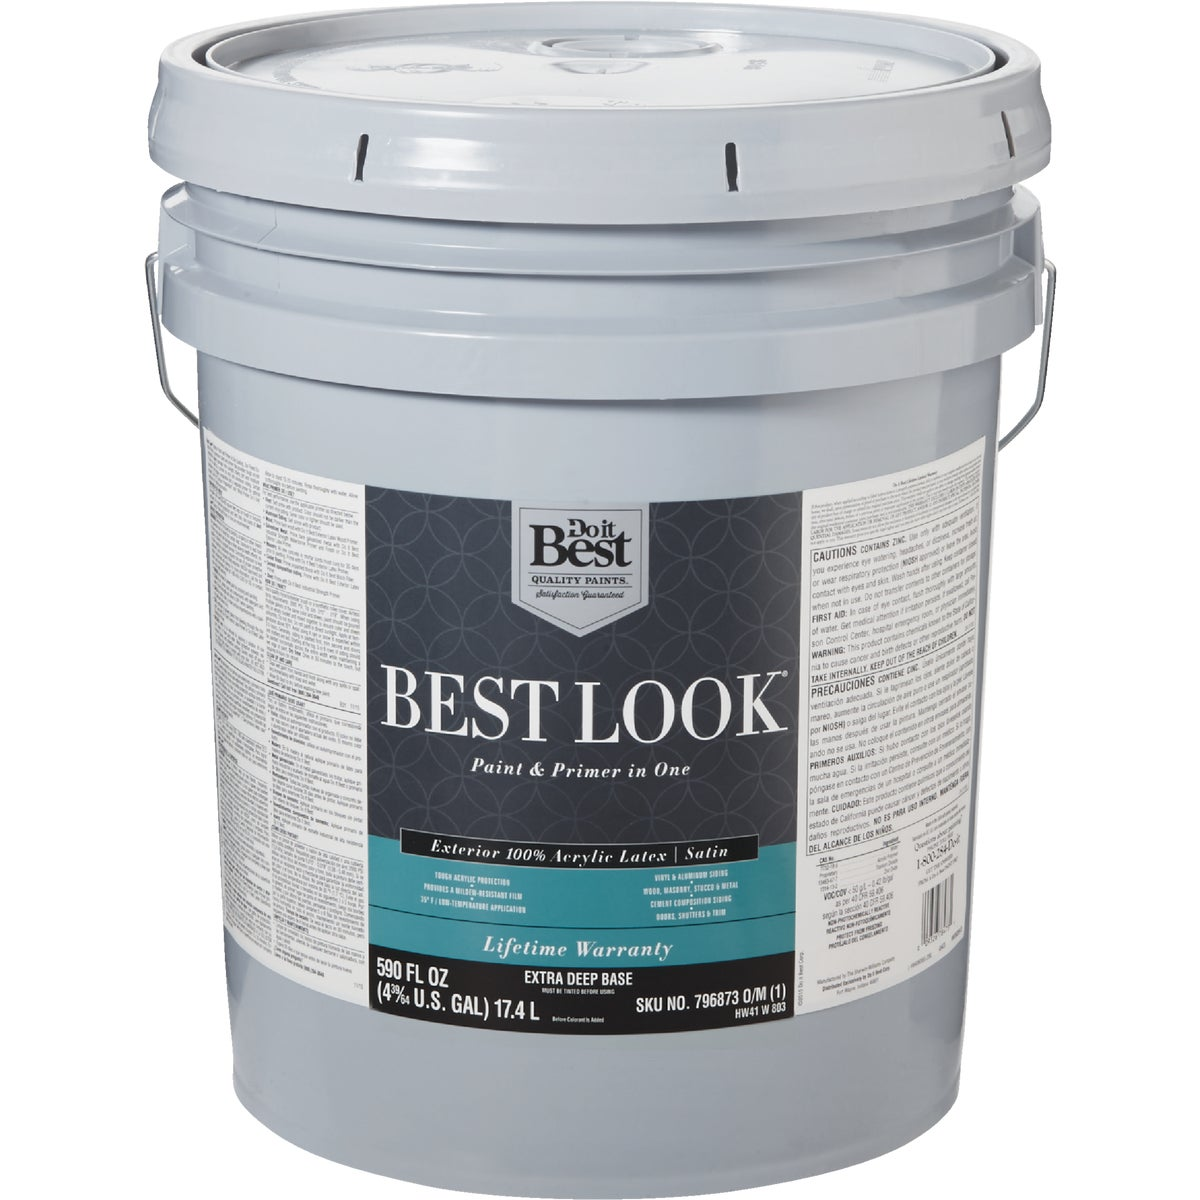 EXT SAT EX DEEP BS PAINT - HW41W0803-20 by Do it Best